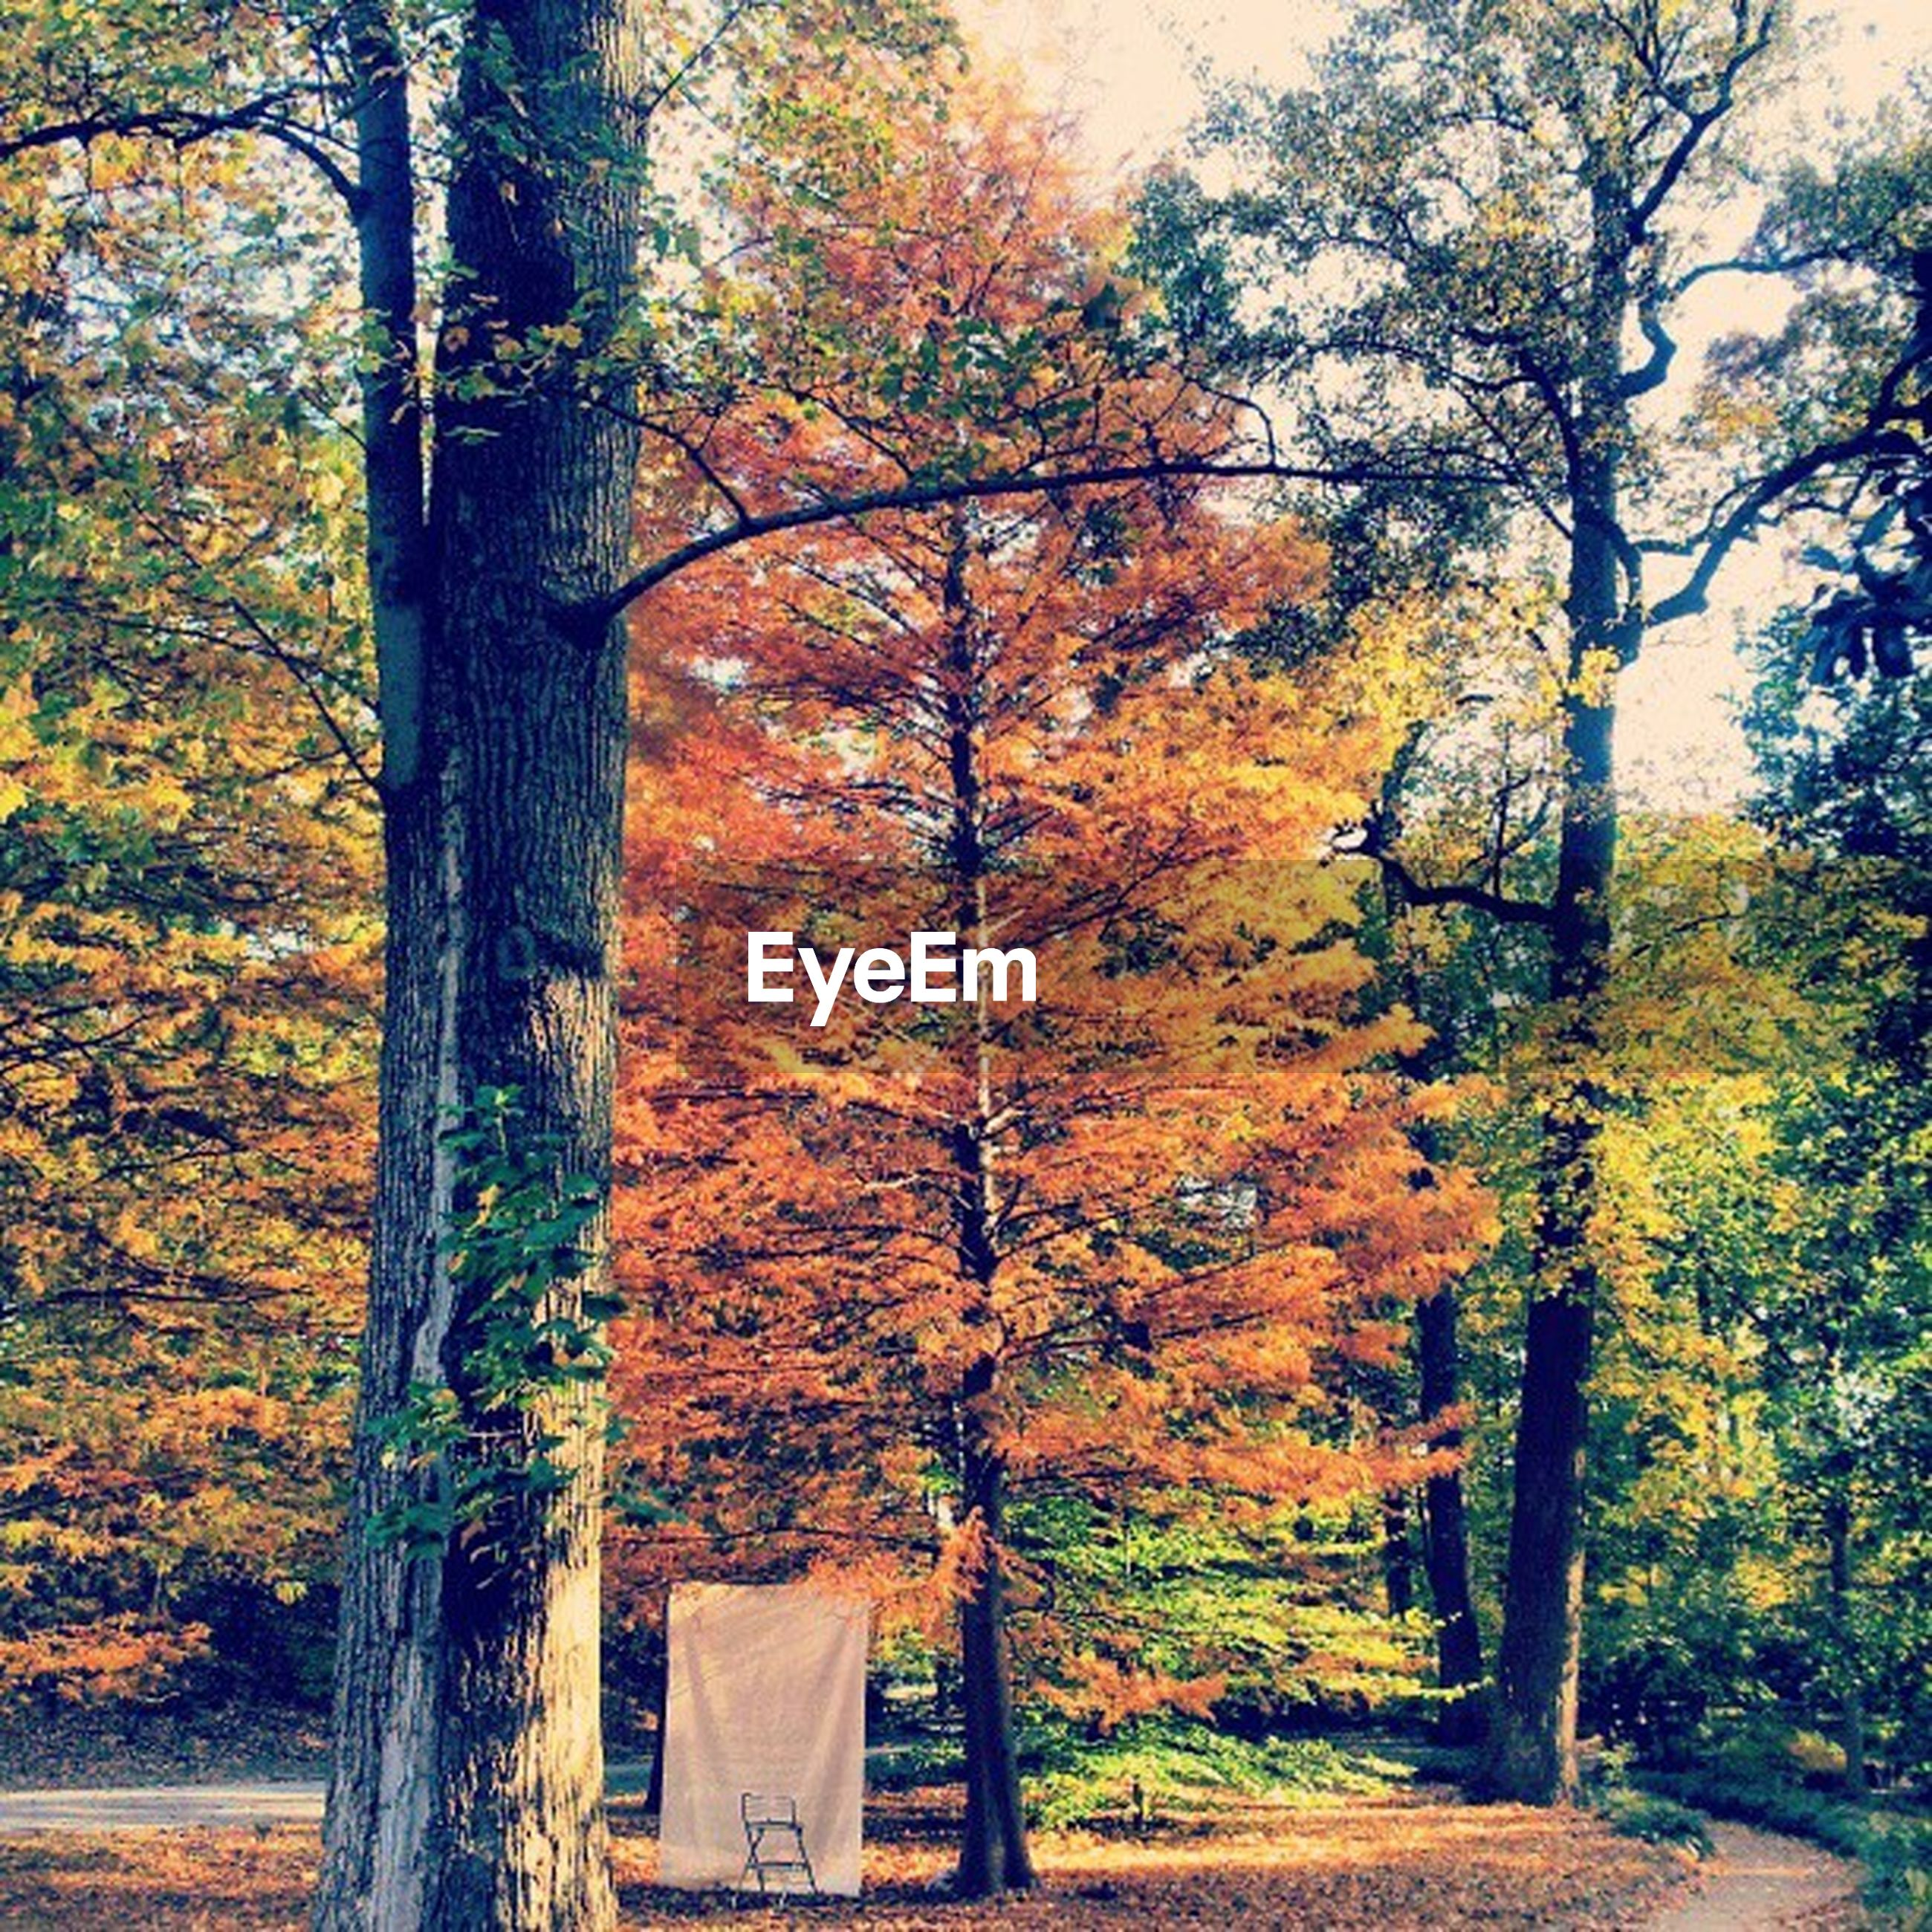 tree, autumn, change, tree trunk, growth, season, orange color, nature, branch, beauty in nature, tranquility, park - man made space, built structure, scenics, tranquil scene, forest, day, outdoors, leaf, park